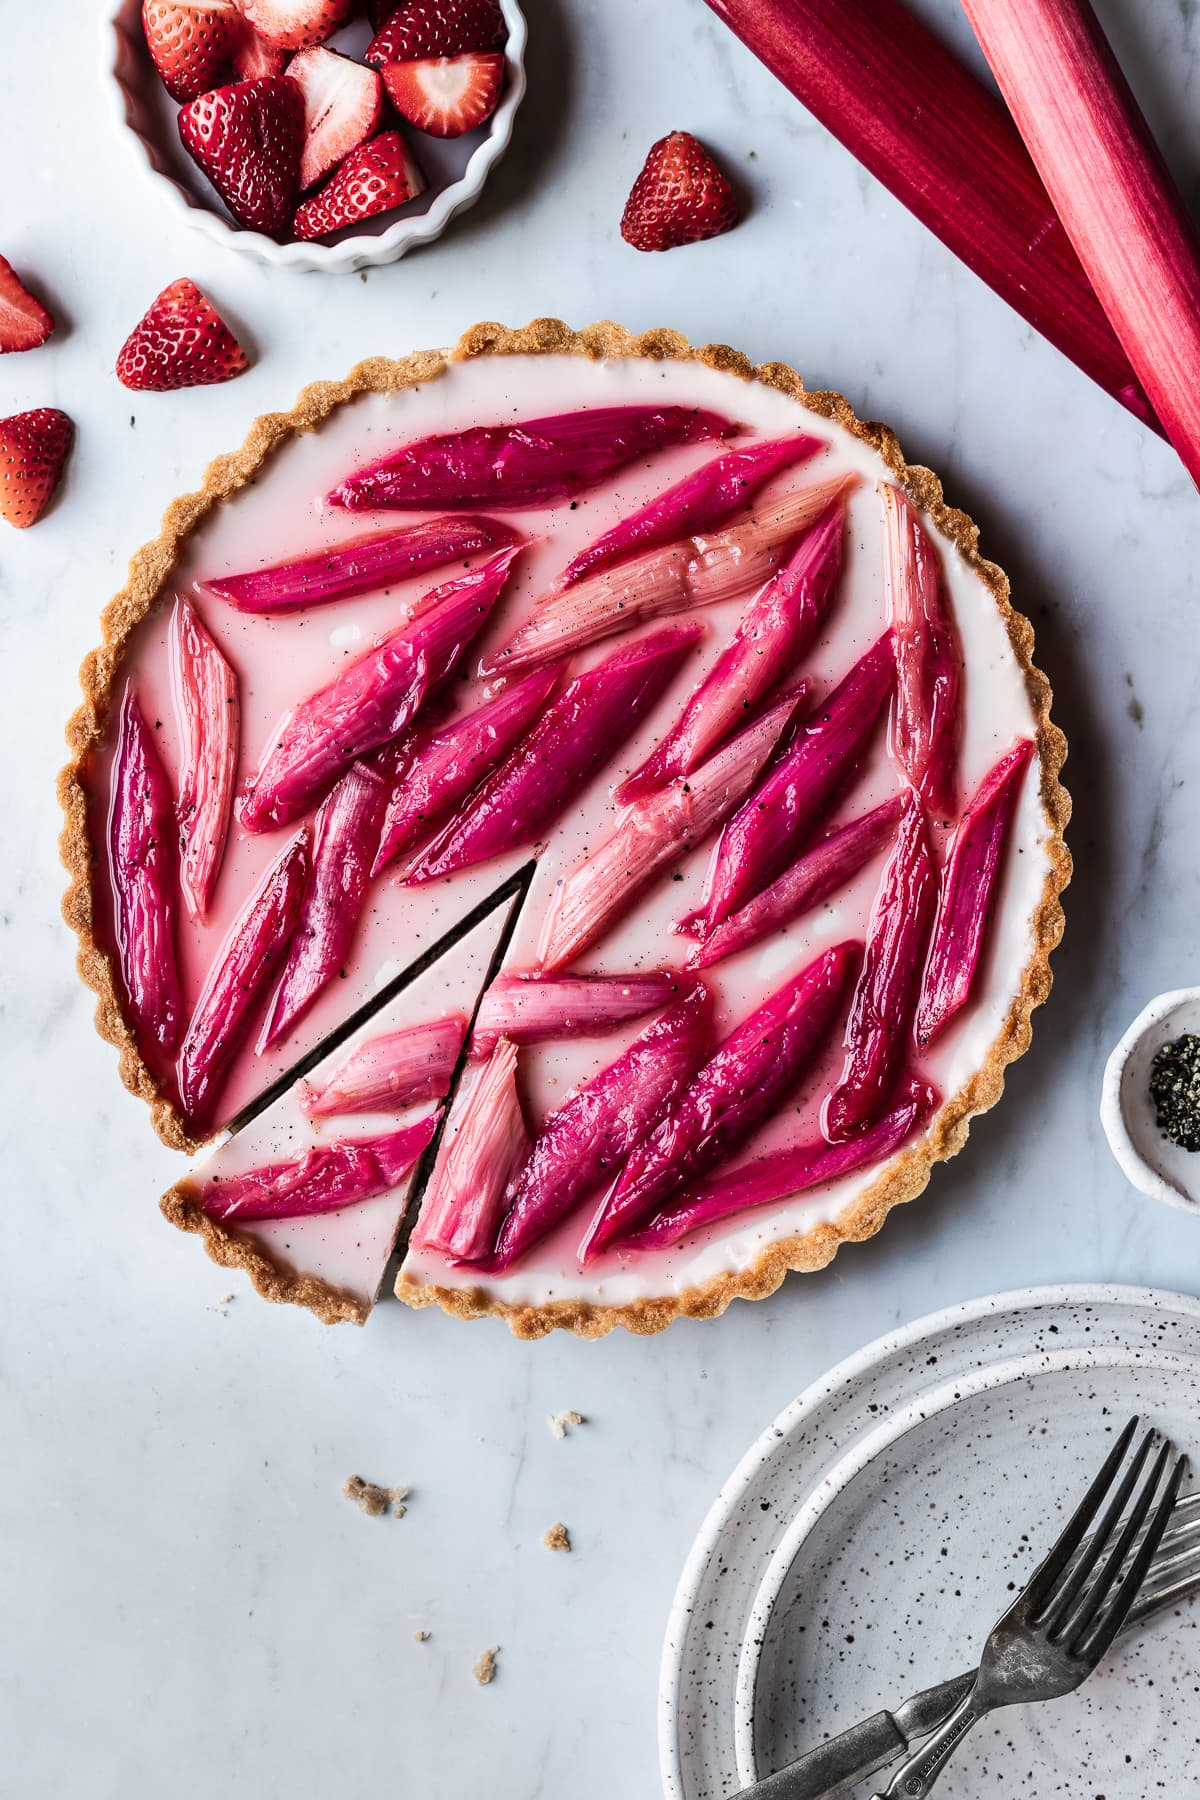 Strawberry rhubarb panna cotta tart with a slice cut into it on a grey marble background with strawberries, rhubarb and plates nearby